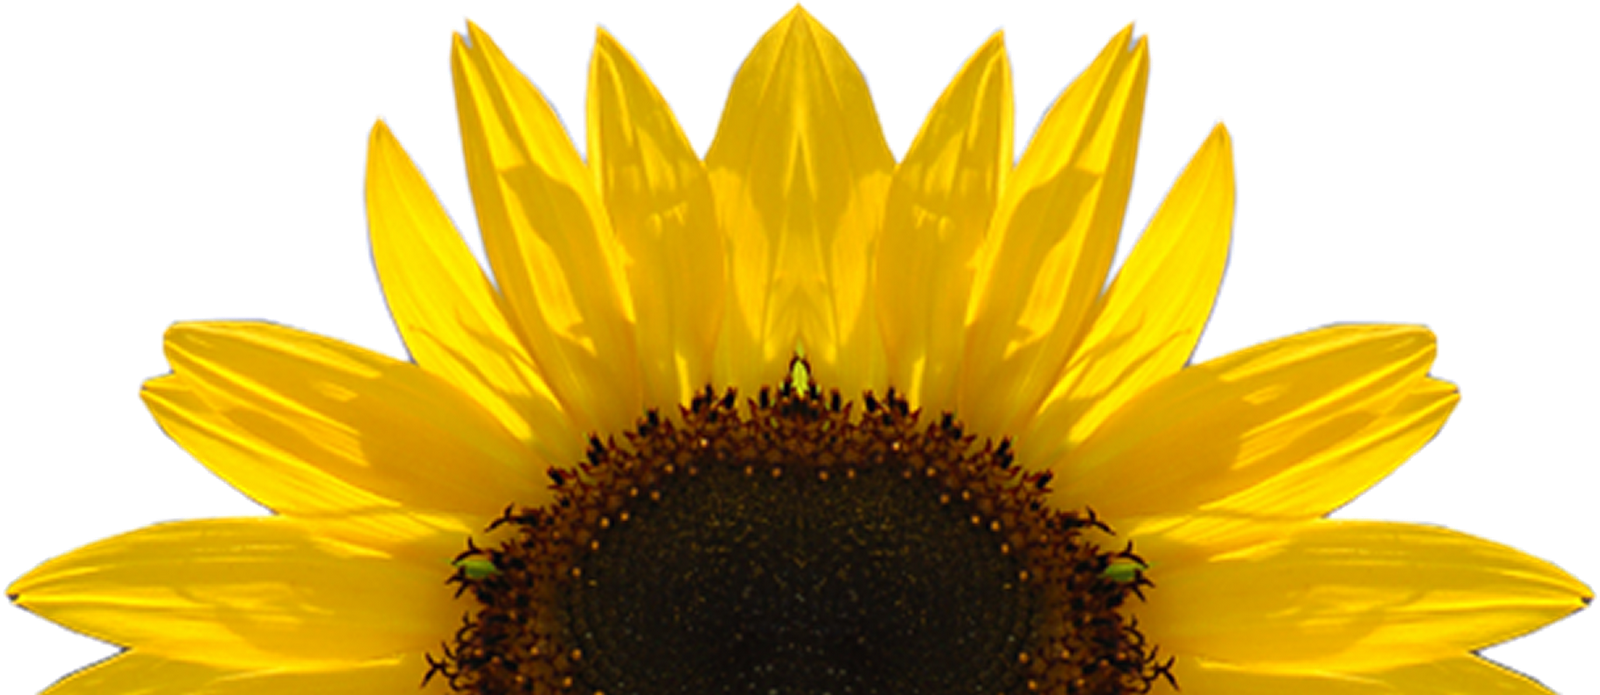 Sunflower vector png. Transparent pictures free icons